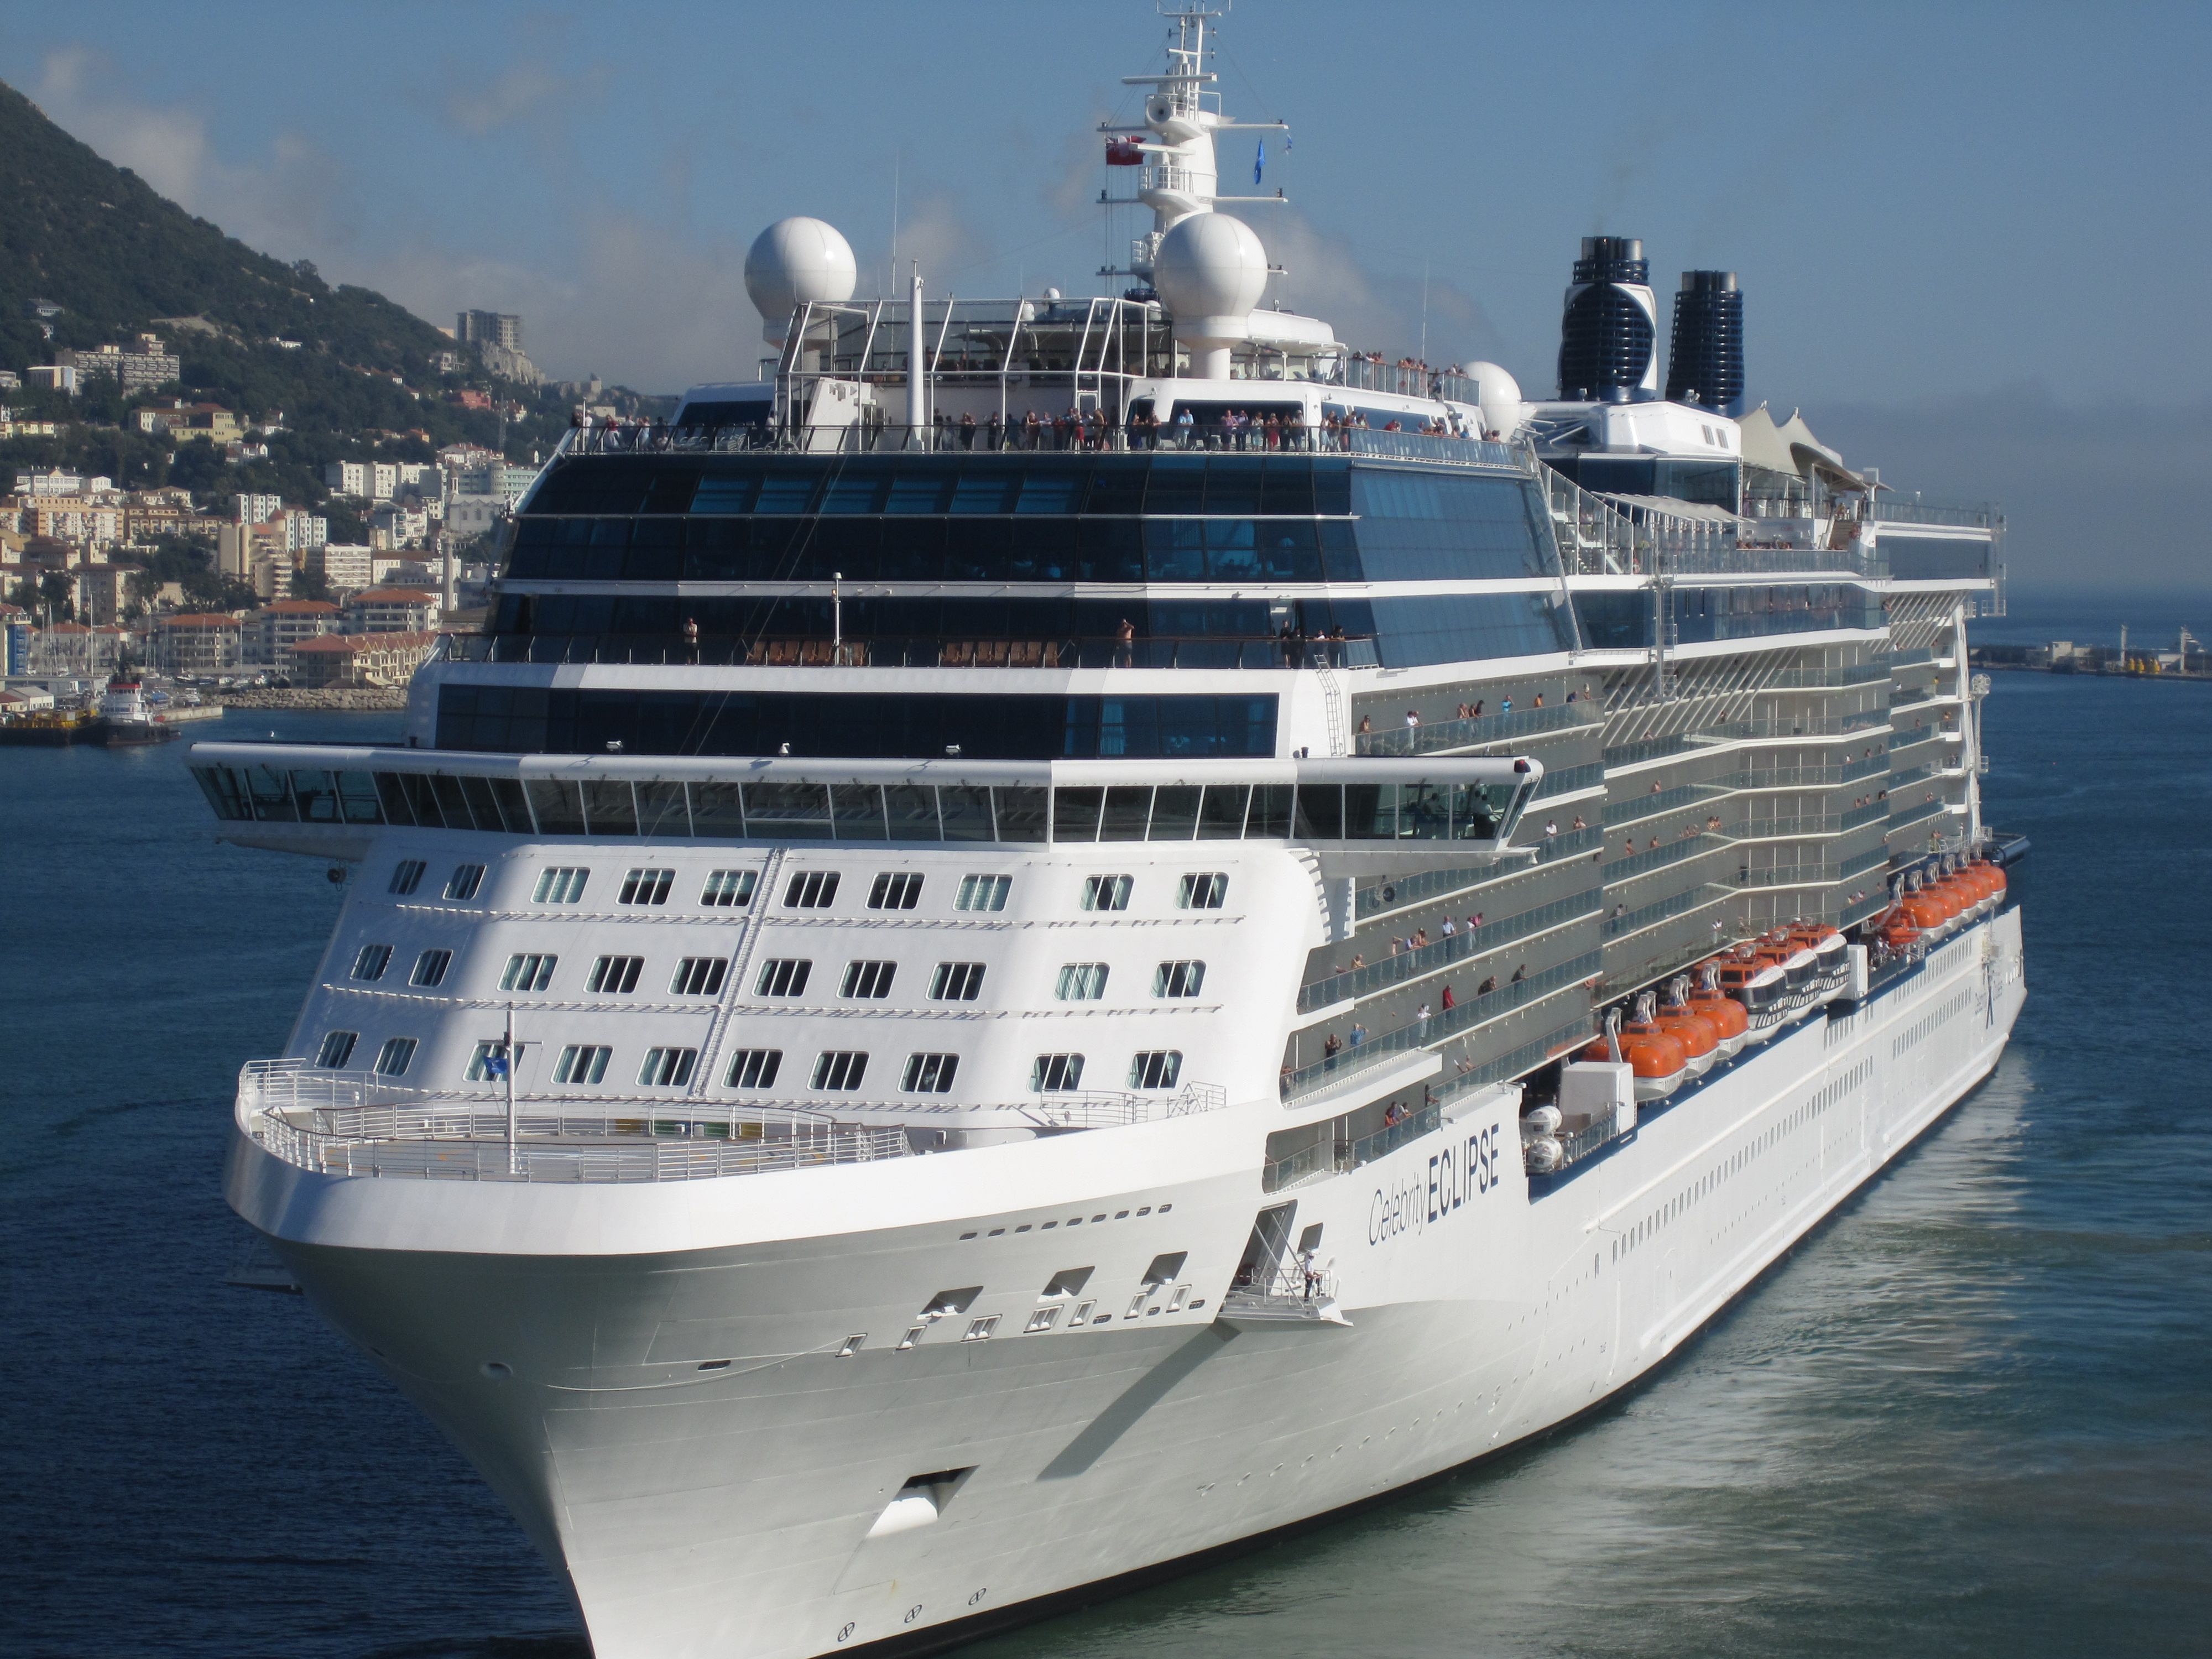 celebrity eclipse almost hits rock bottom cruisemiss